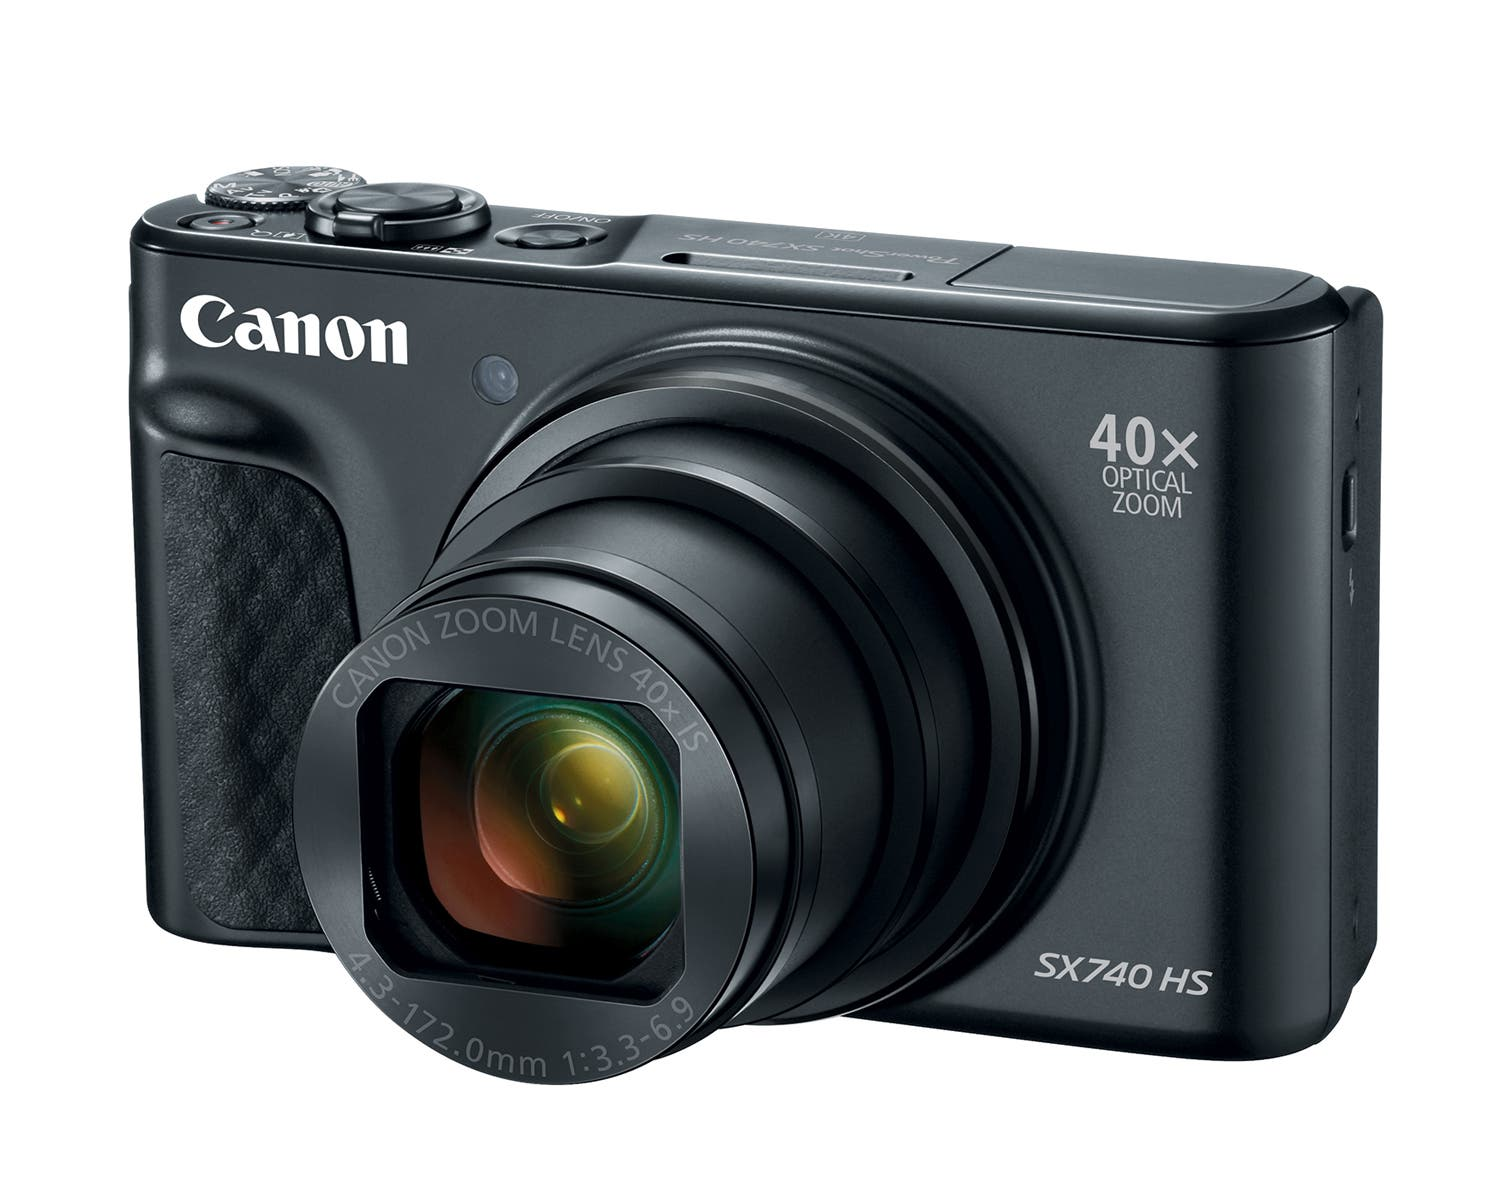 The Canon PowerShot SX740 HS Does Something Their Higher End DSLRs Don't